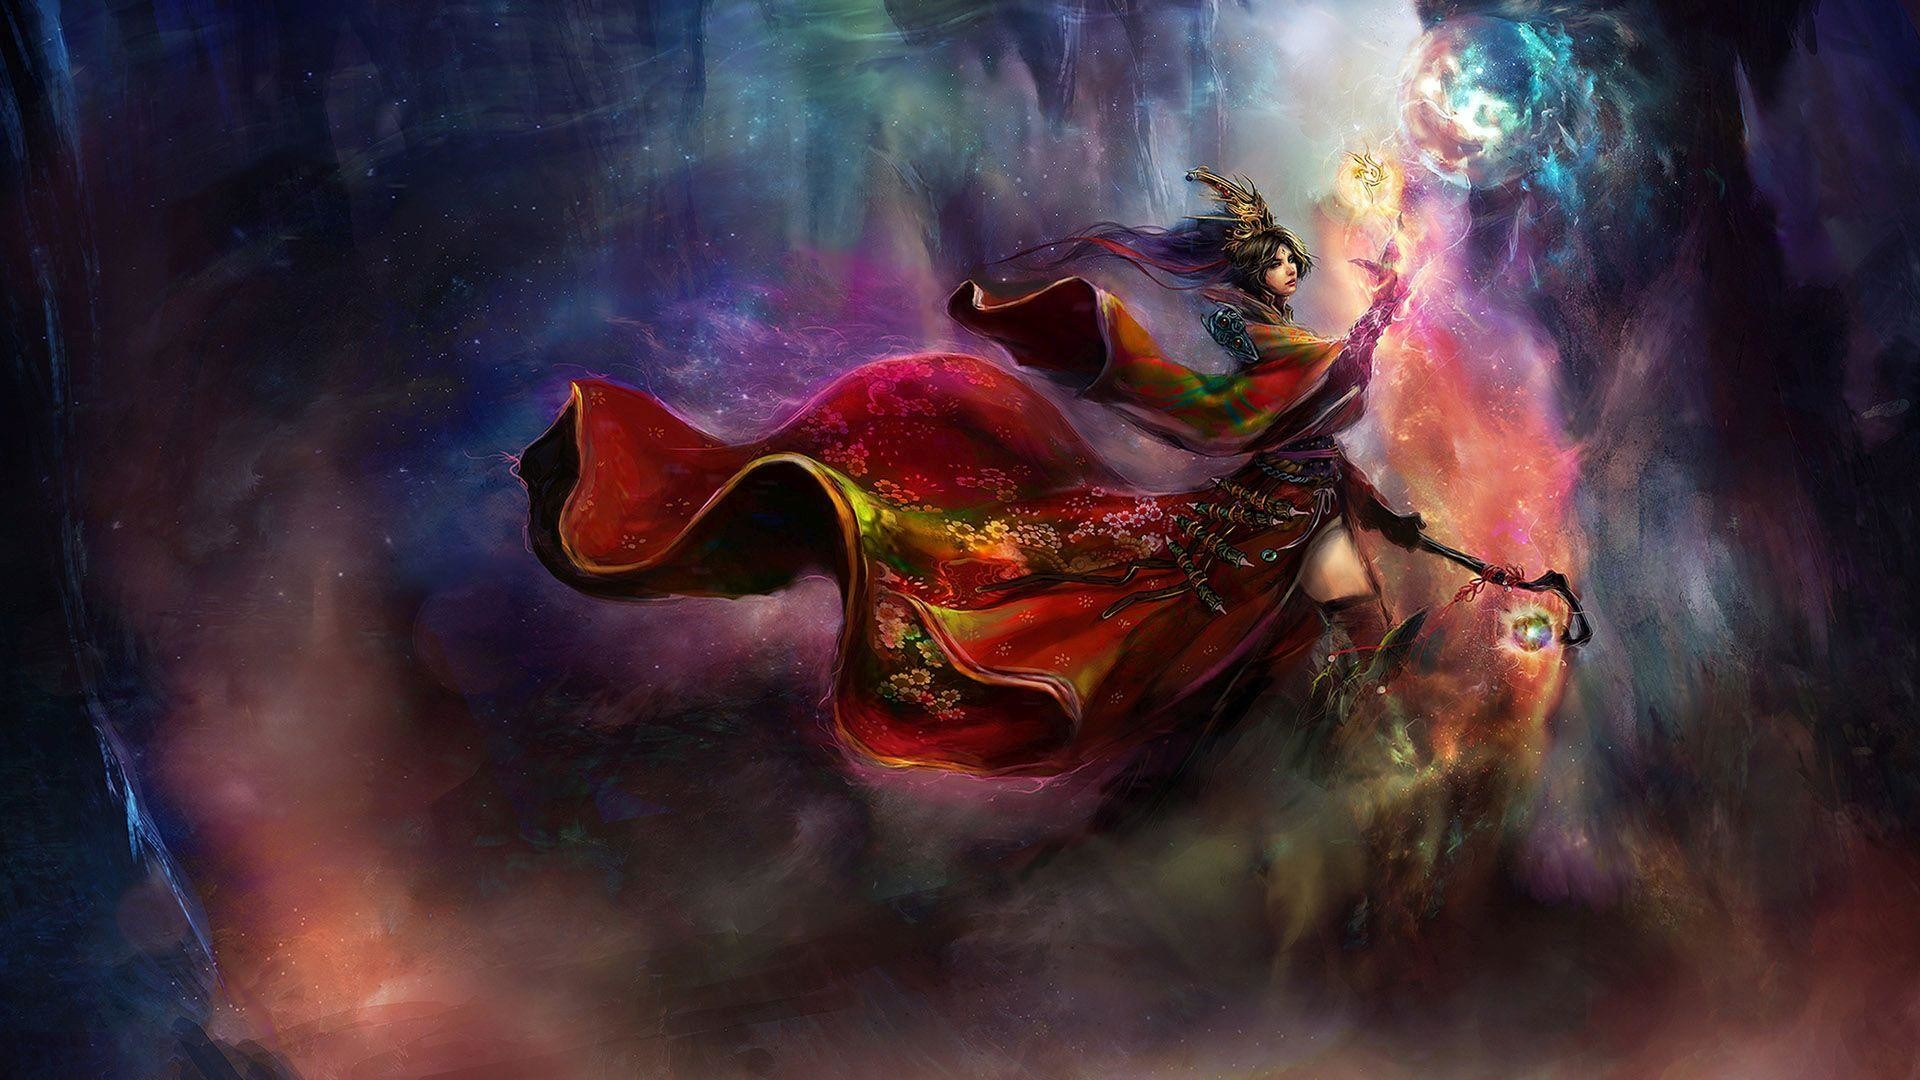 Fantasy Wizard Background 1 Hd Wallpapers: 1920x1080 HD Wallpaper Only (56+ Images